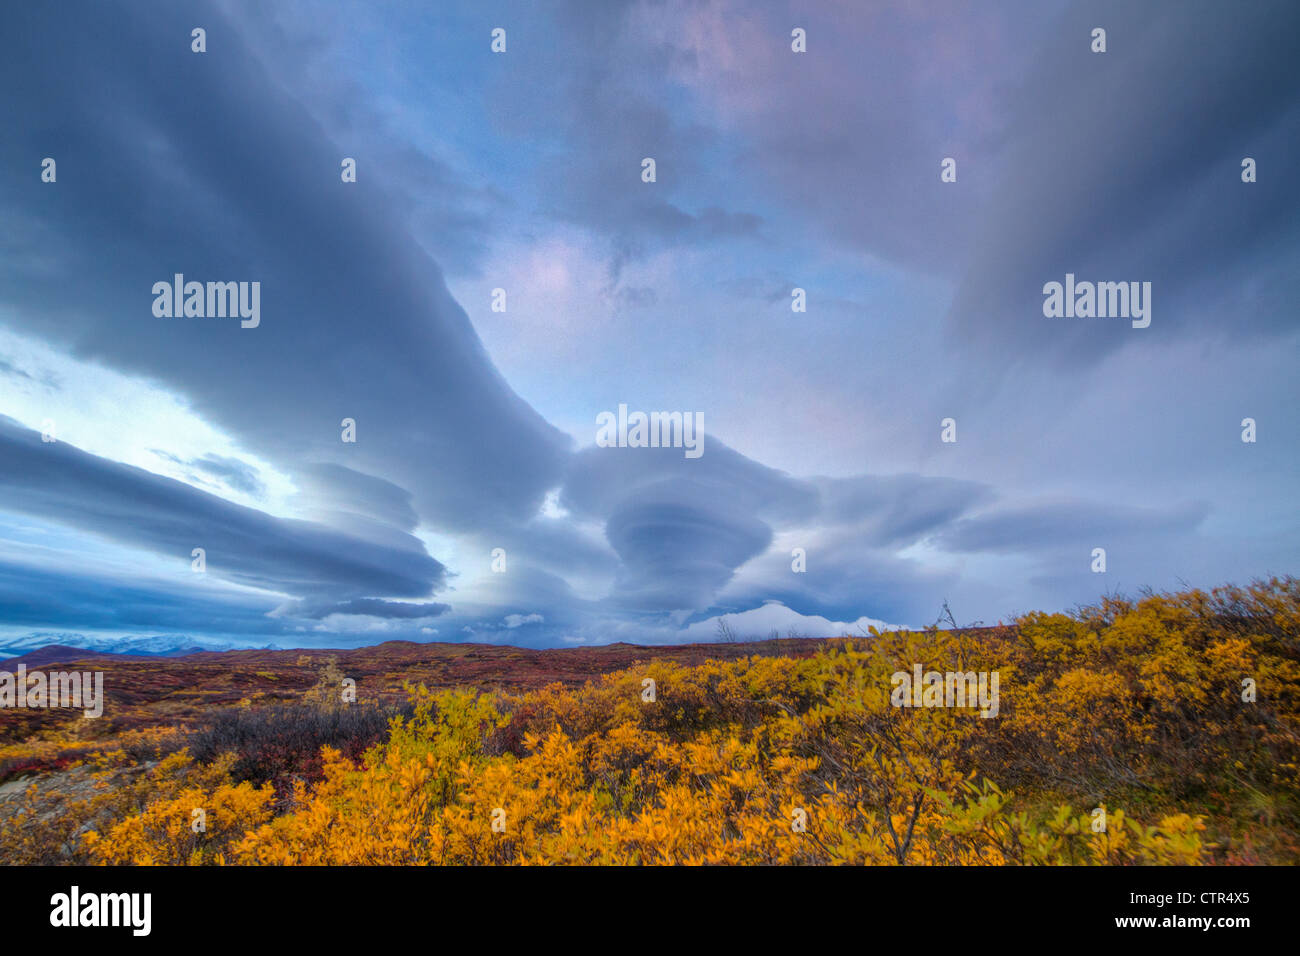 Dramatic lenticular cloud formation over the Maclaren River Valley, Southcentral Alaska, Autumn - Stock Image